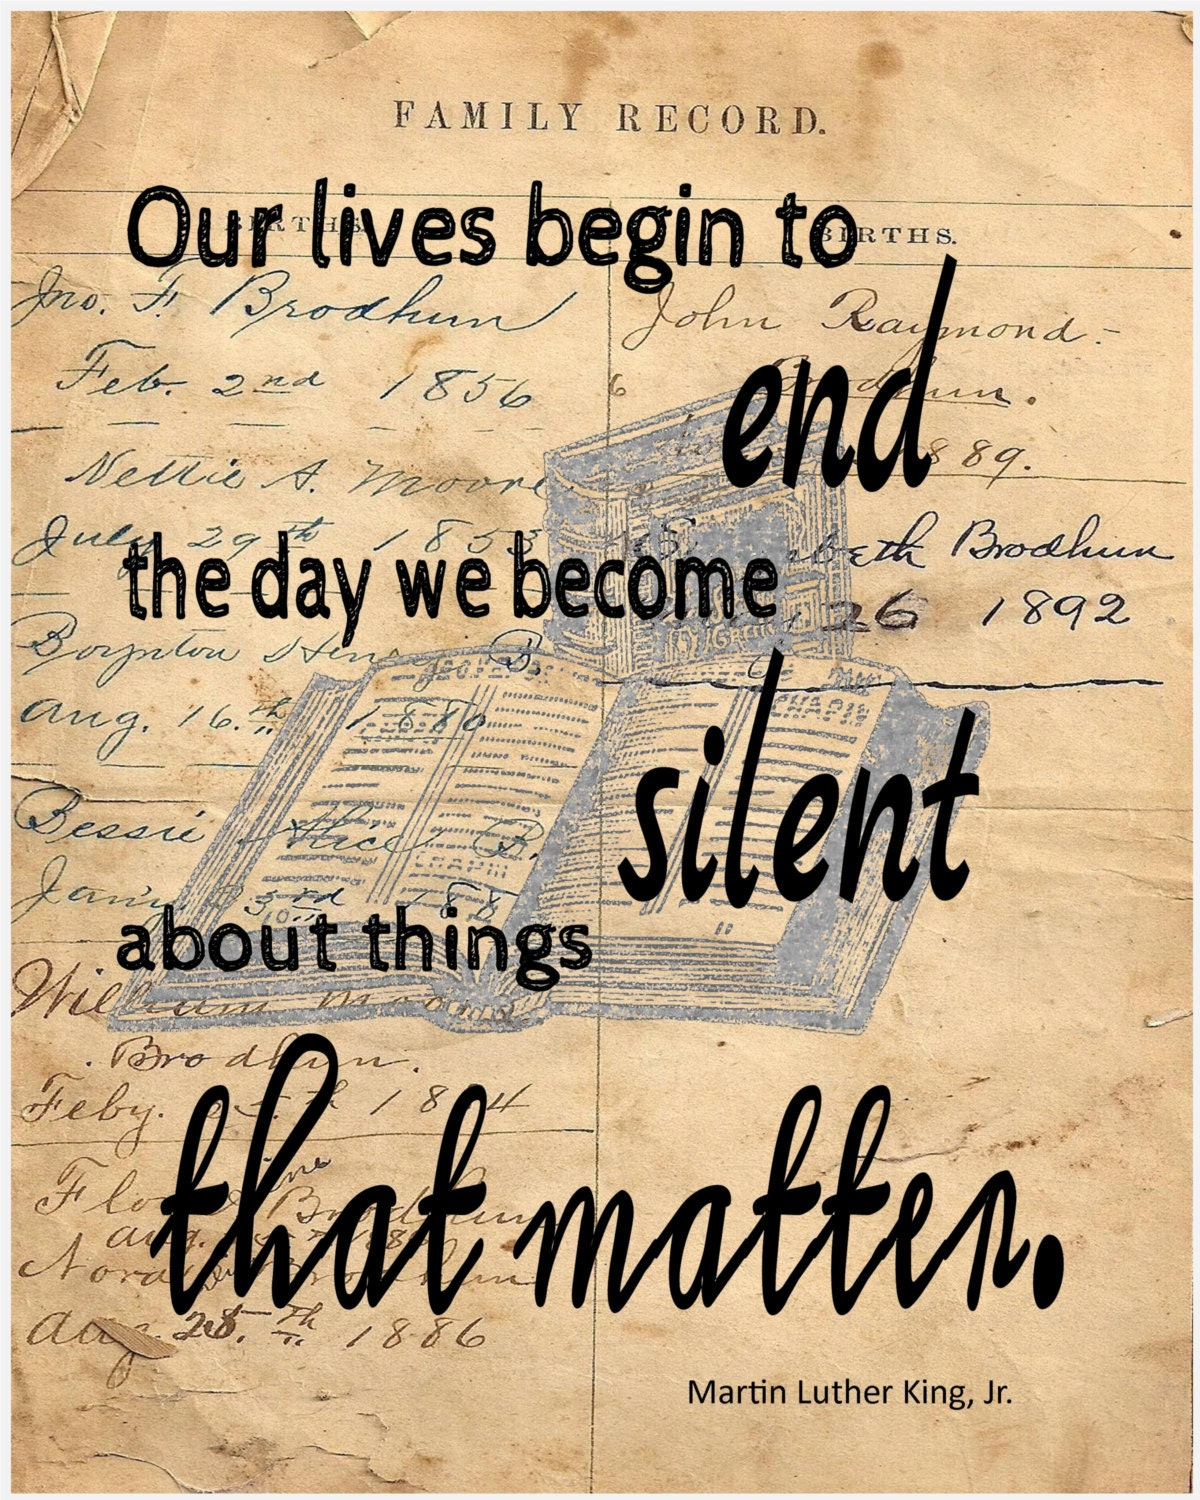 Martin Luther King Jr quote image on reproduction of antique ledger ...